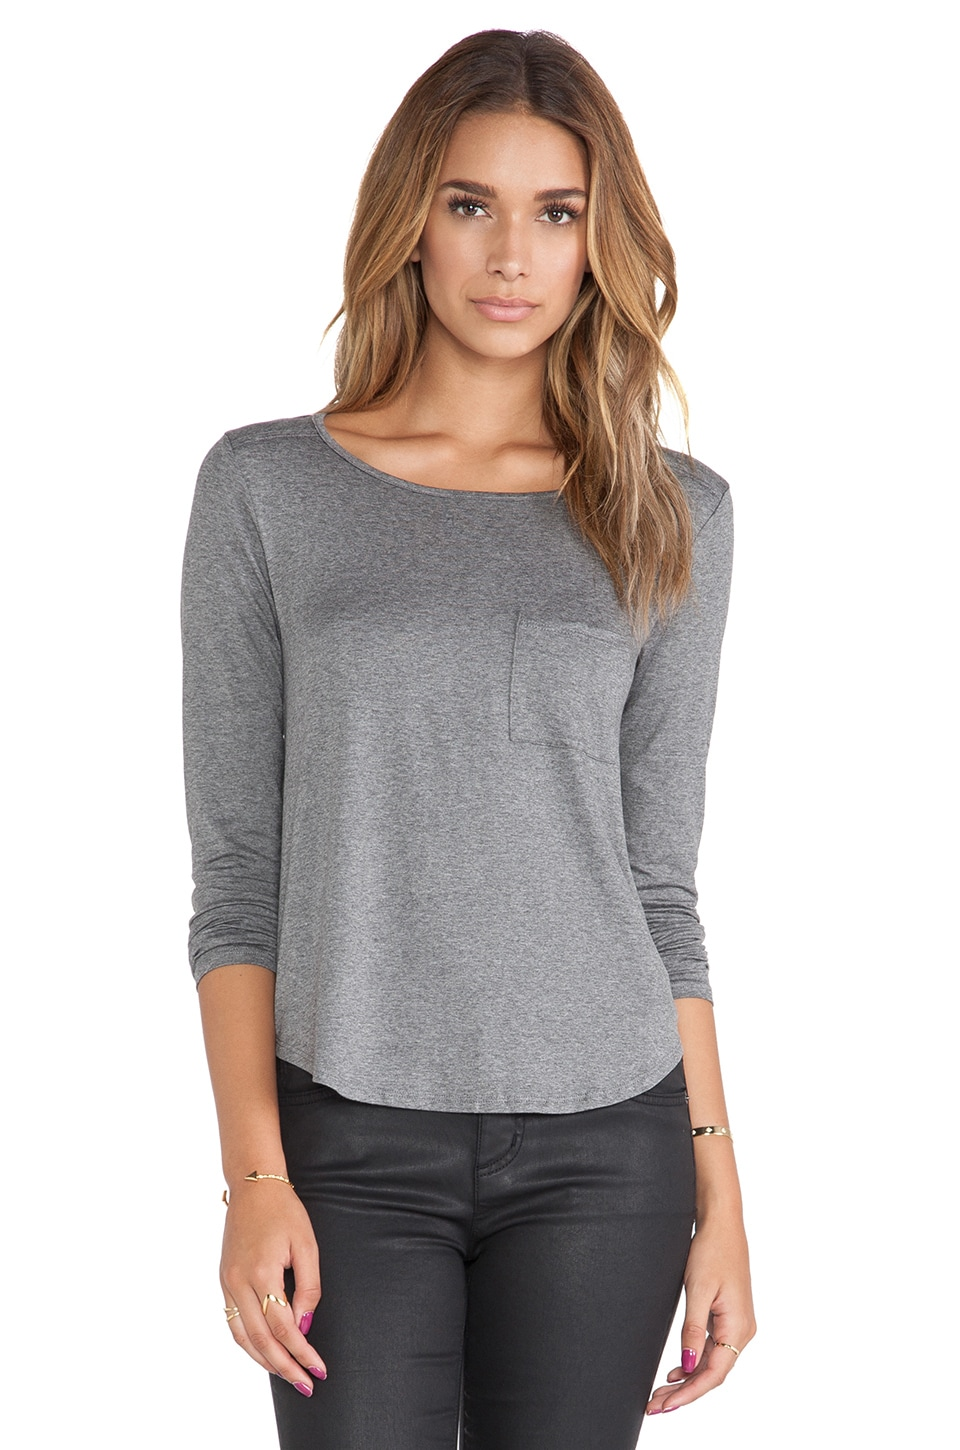 Feel the Piece Ellie Long Sleeve in Medium Heather